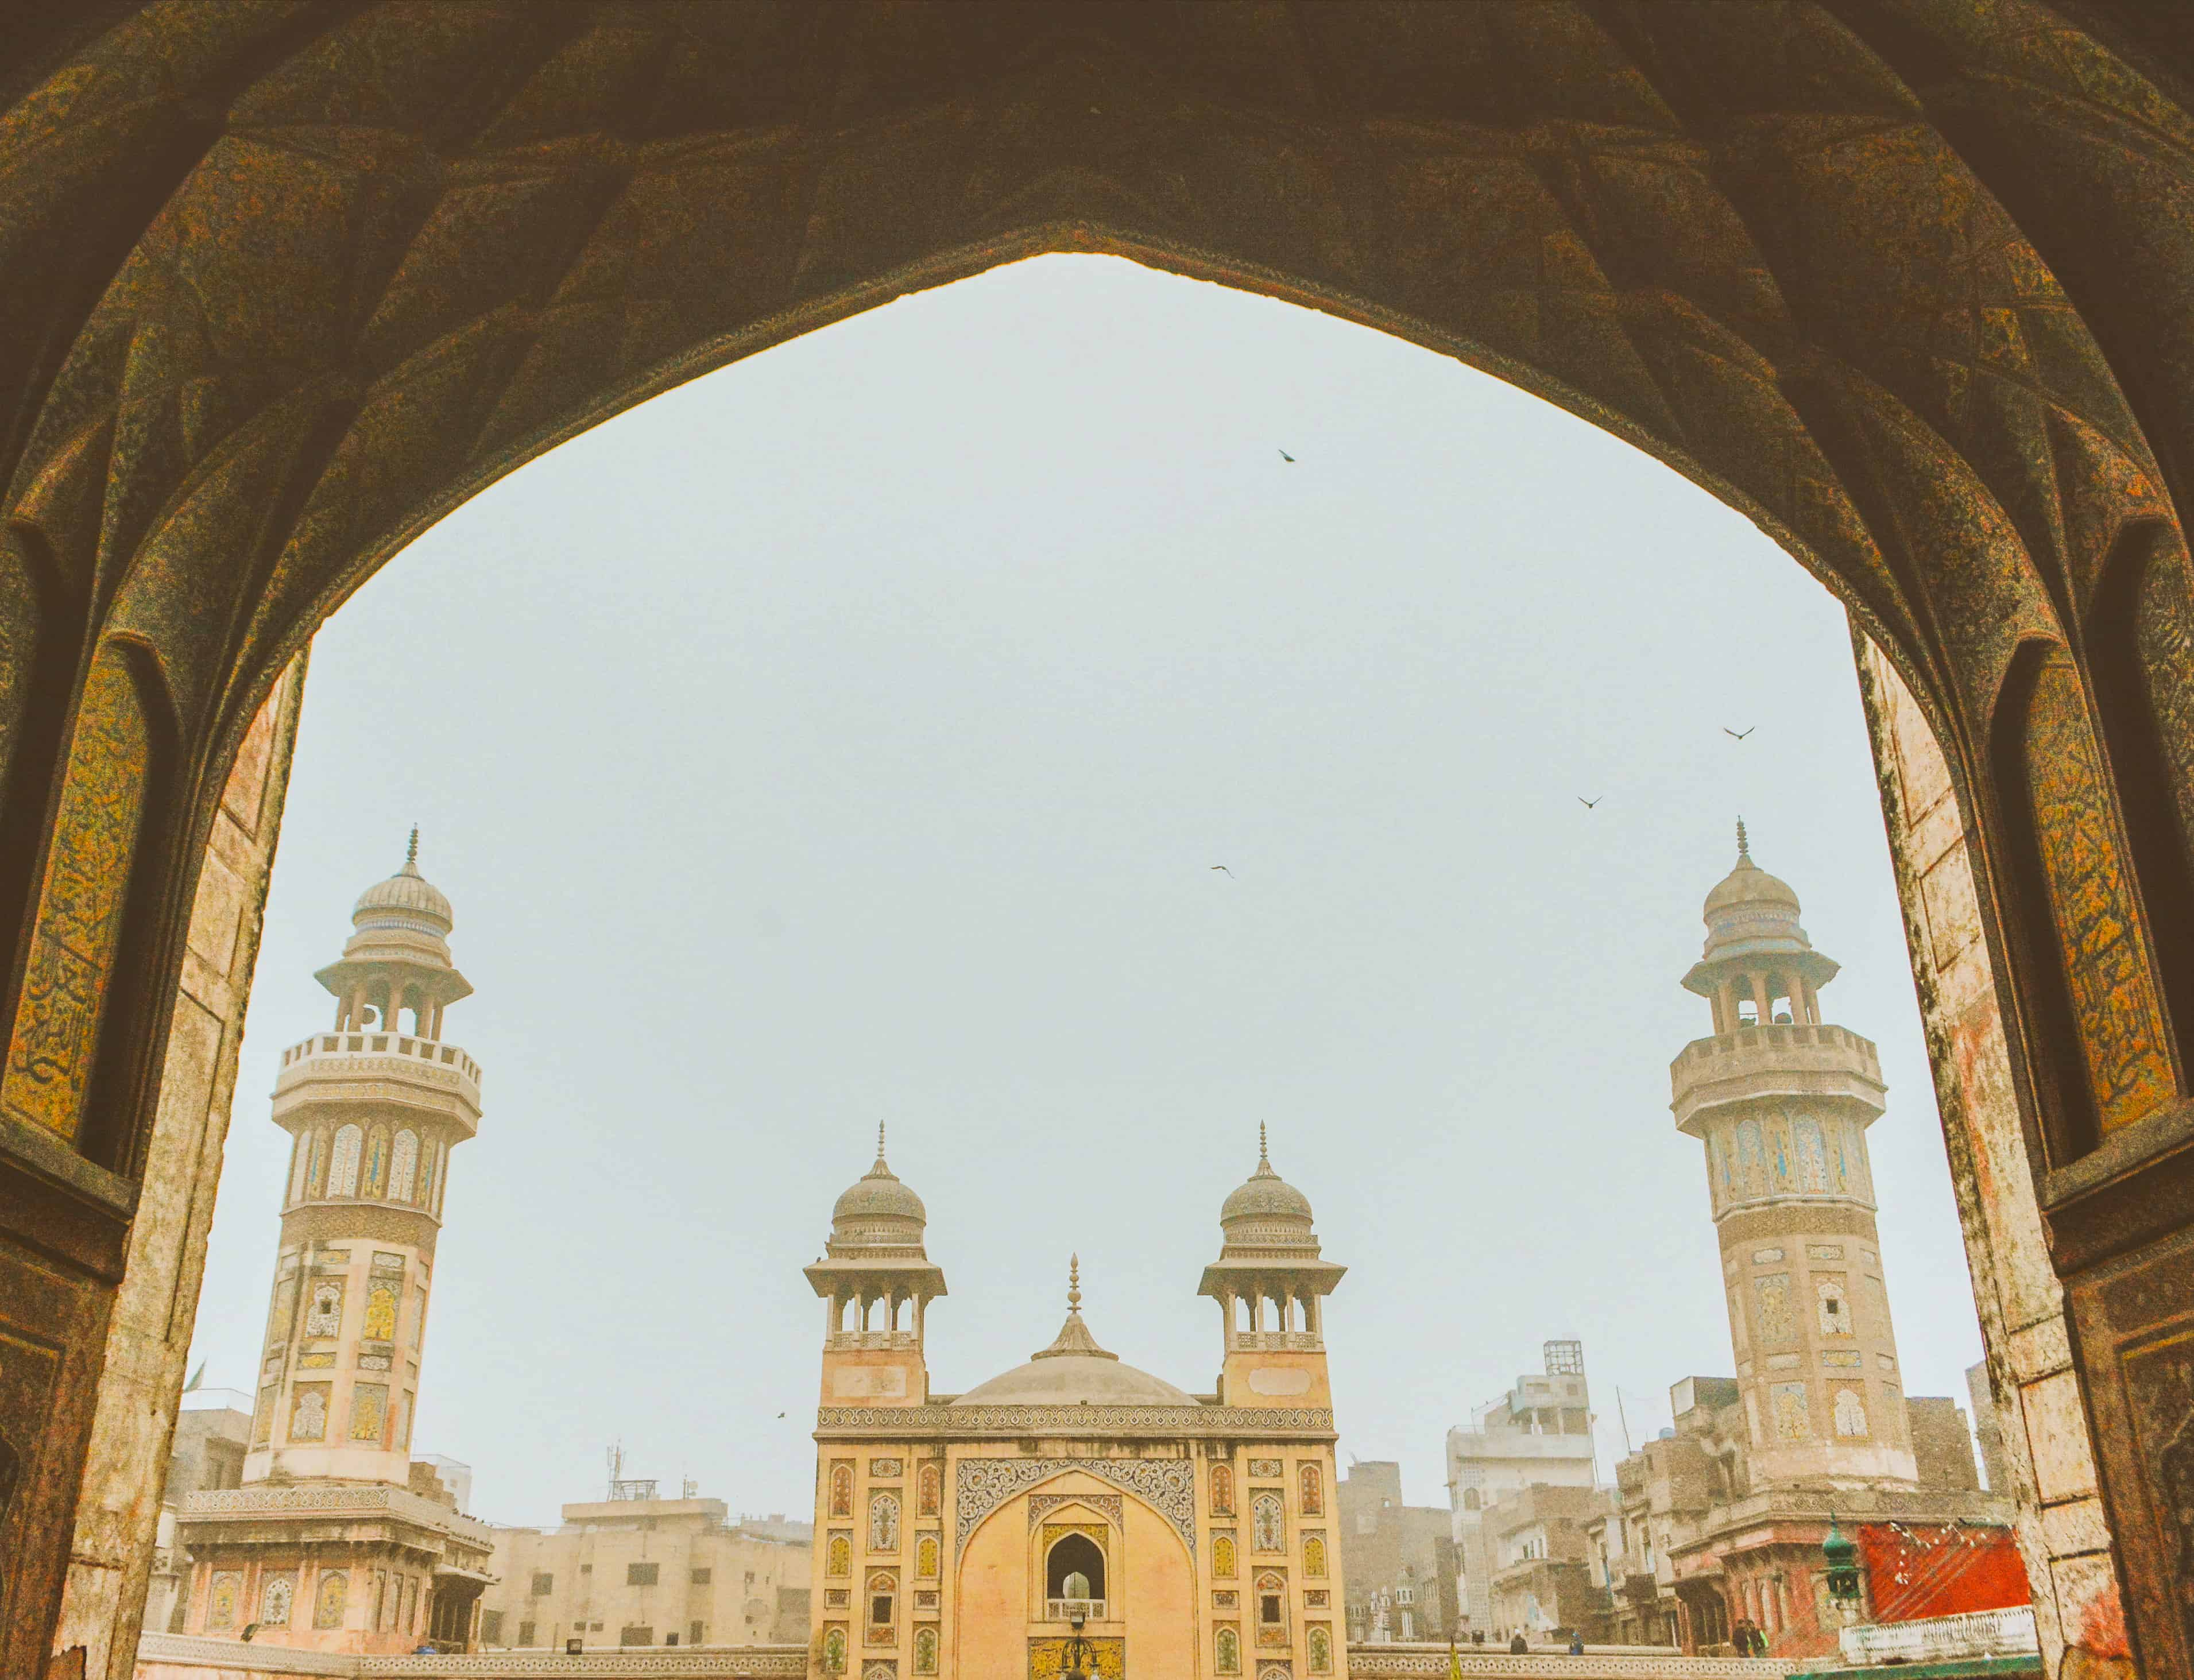 View of the Wazir Khan mosque in Lahore Old City